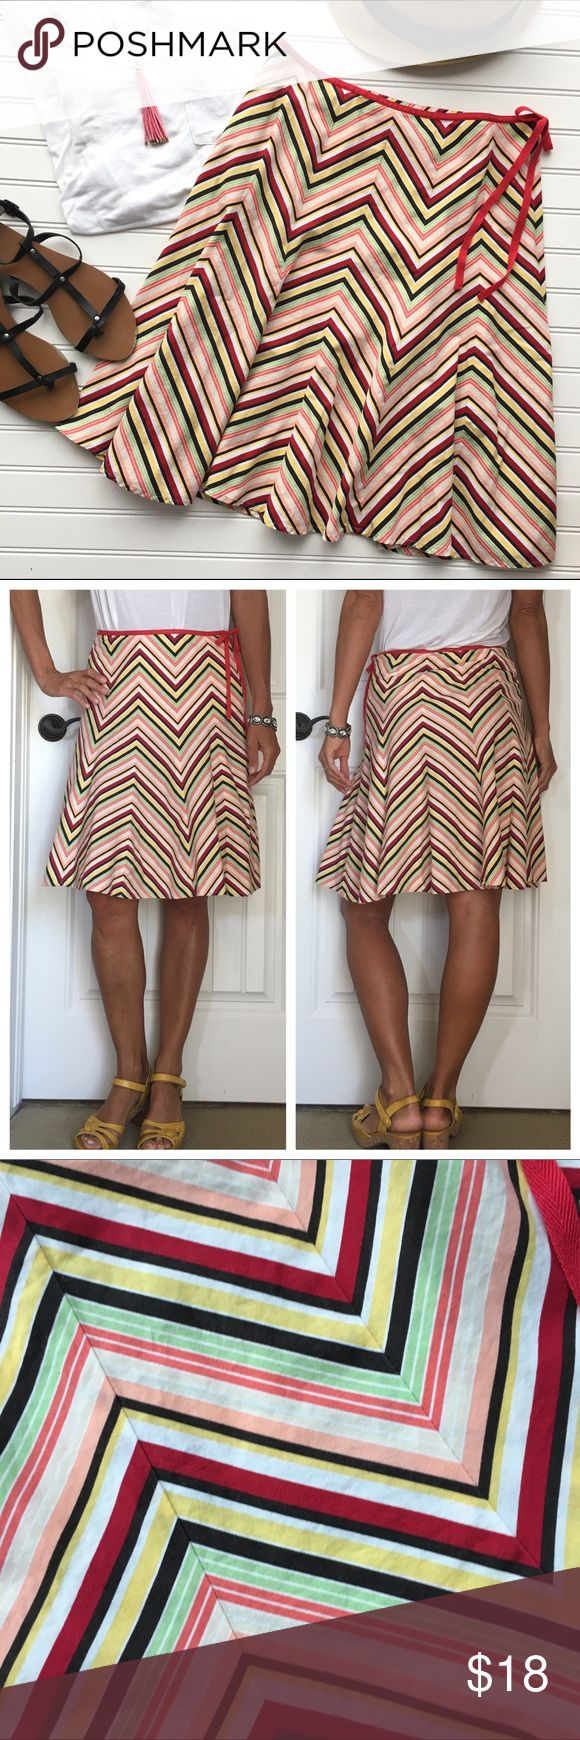 """.Ann Taylor LOFT Chevron Skirt .Ann Taylor LOFT Chevron Skirt   size 6; 100% cotton  A-line skirt in festive chevron pattern   fitted waistband with side zipper; twill trim that ties at side   darts along waist; flares out in flattering shape   looks great with a simple white tee & sandals! . EUC, no flaws . 14.5"""" waist 22"""" length   #shopsmall #anntaylor #chevron#loft #summerstyle #shopmystyle #summerfashion #forsale #shopmycloset #clothingforsale #thelookforless #shopwardrobewednesday Ann…"""